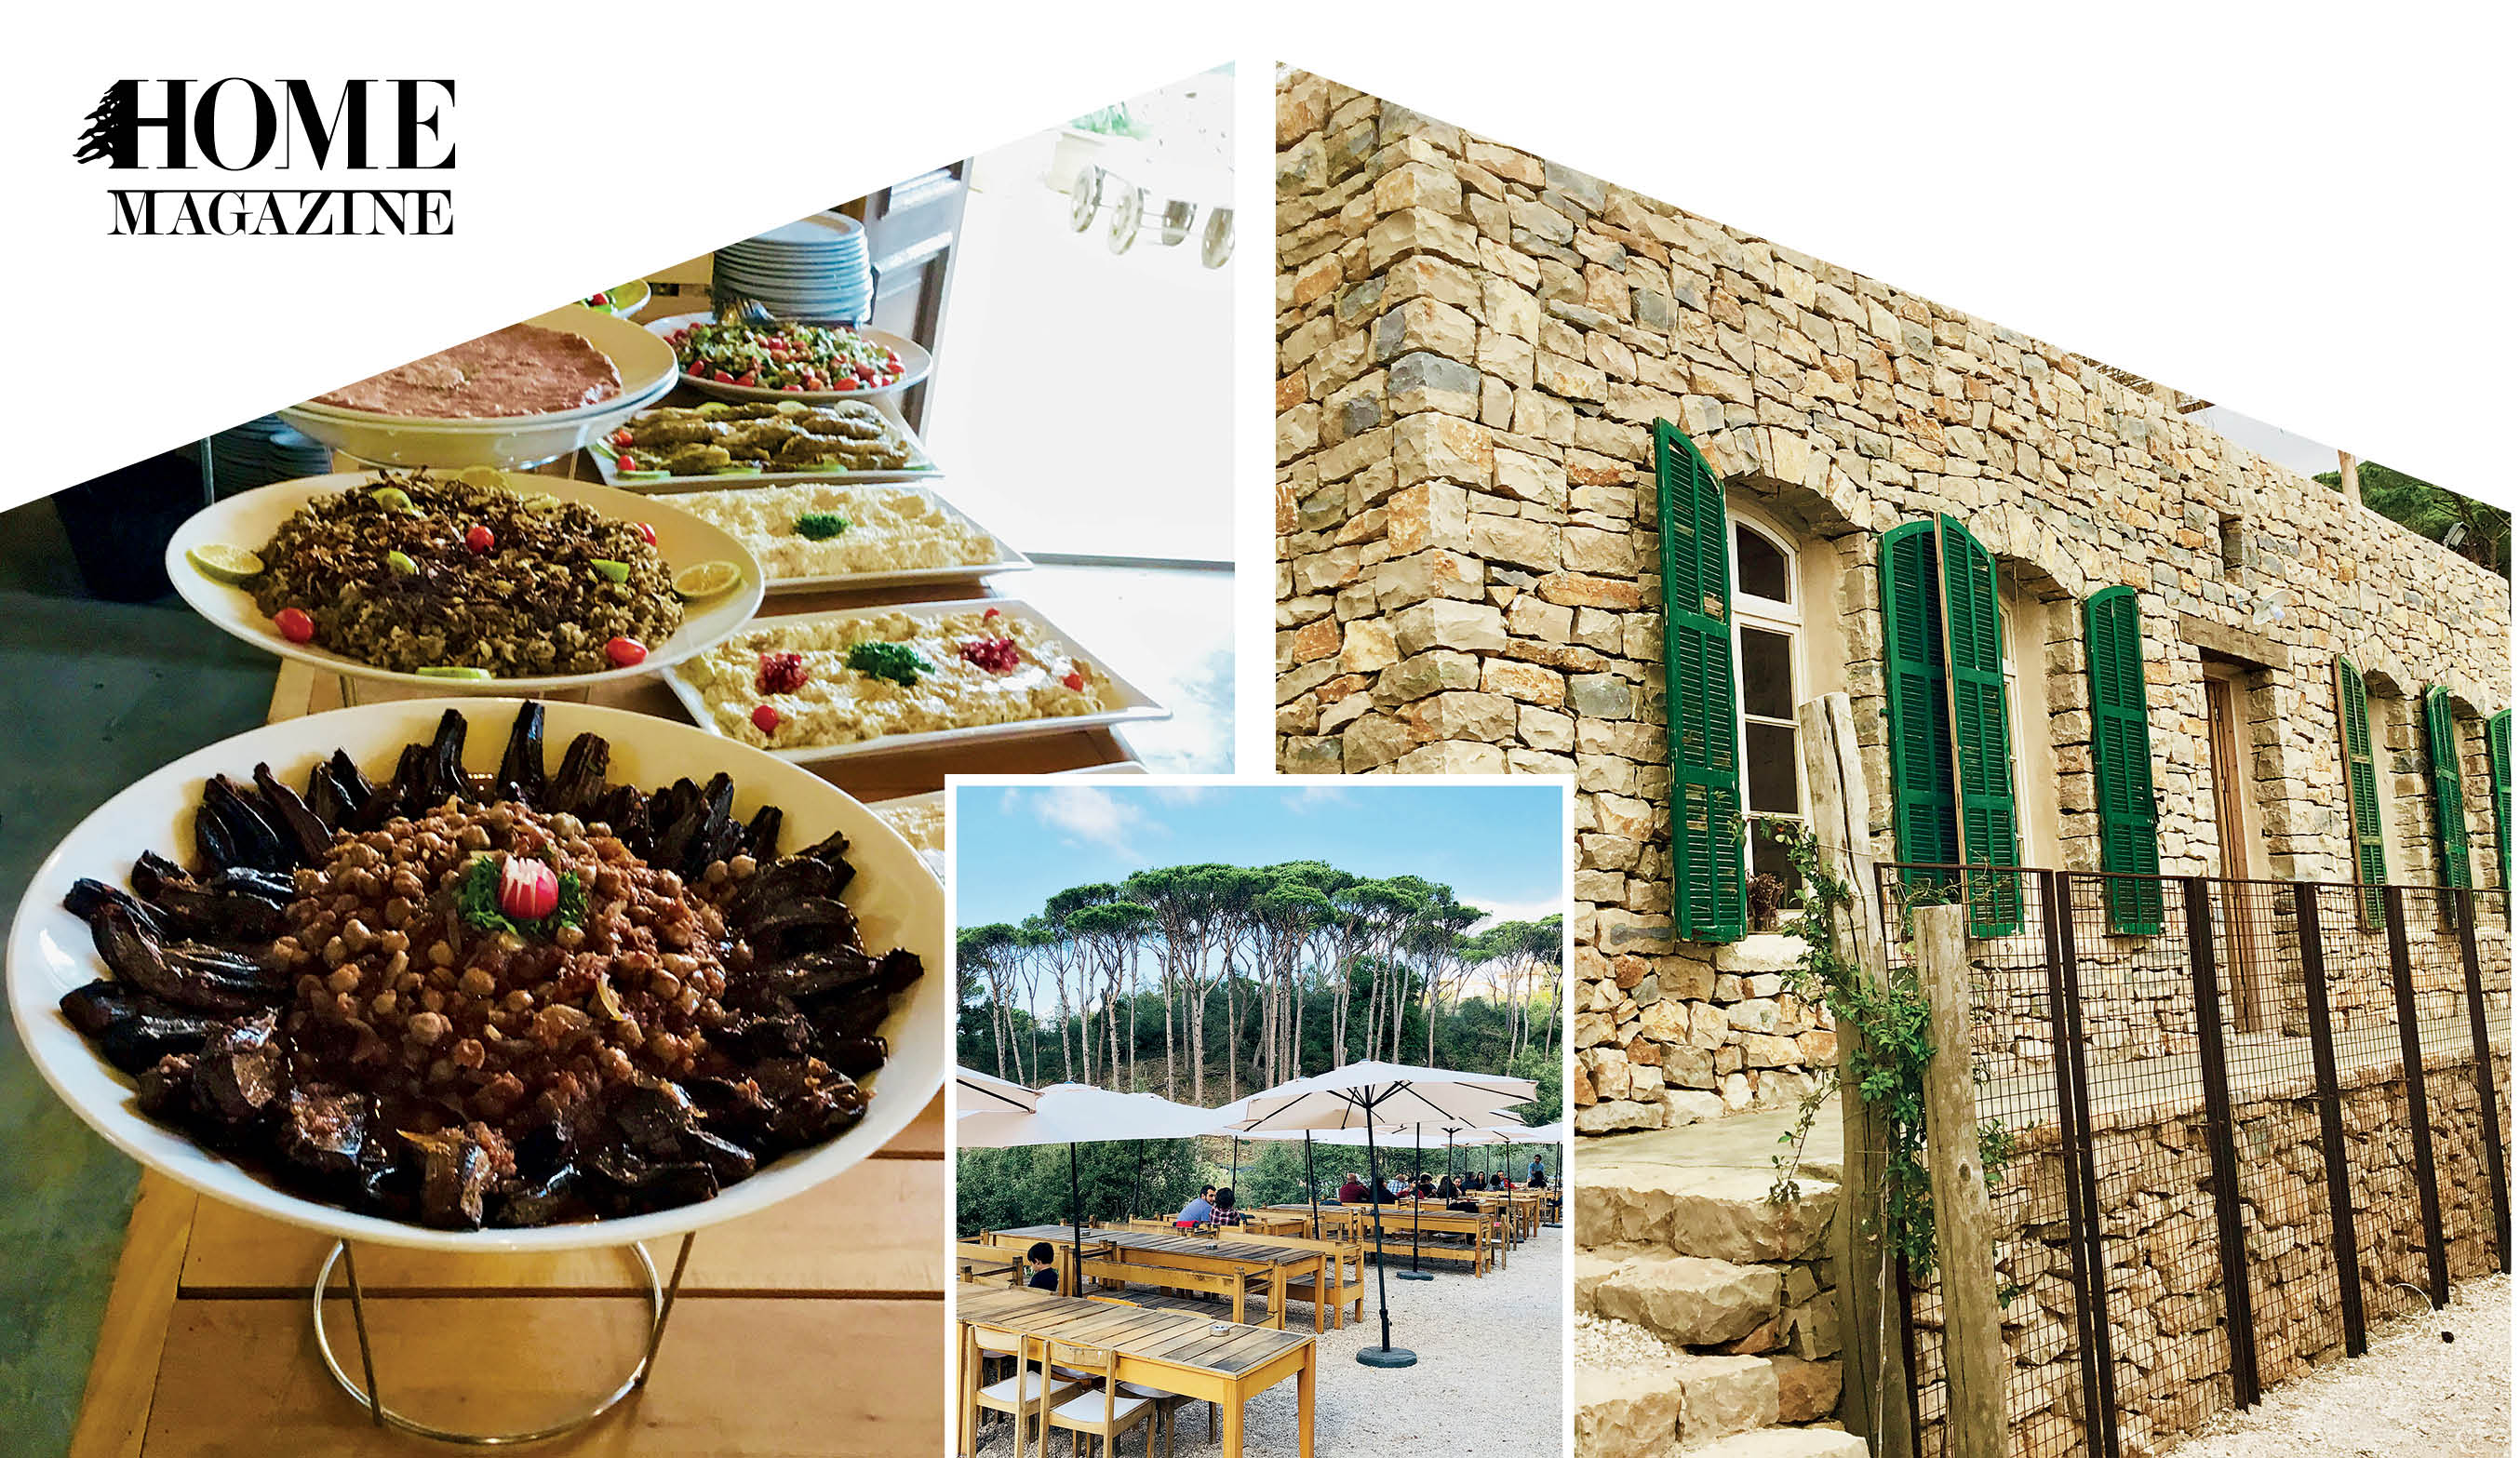 A picture of food platters, a picture of wood tables with green trees, and a picture of a house of rocks with green windows